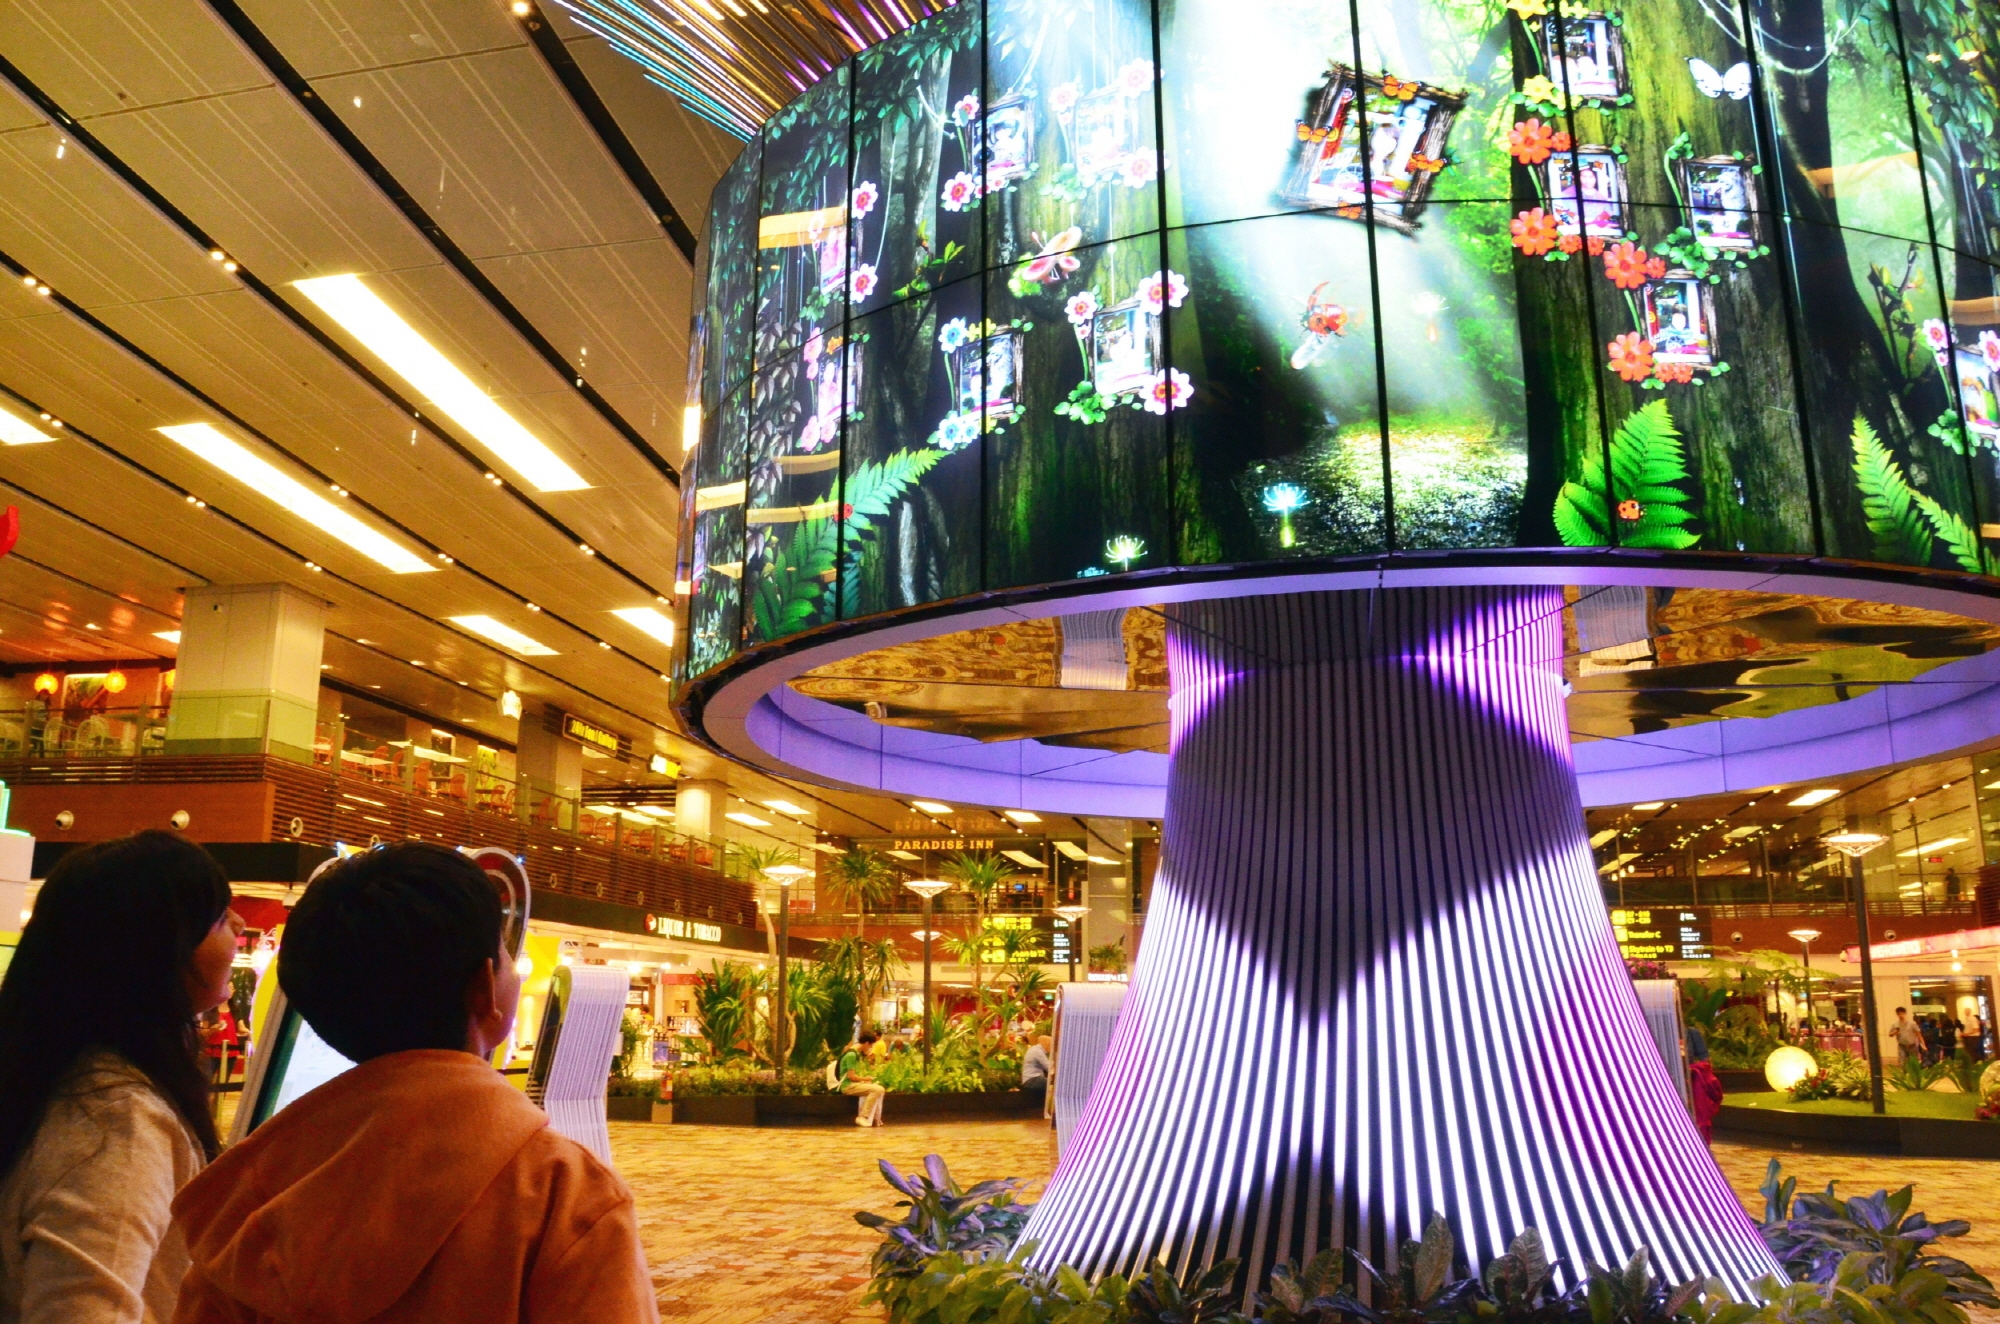 Travelers watch the vivid imagery of LG's 64 47WV30 displays within the Social Tree installation at Changi Airport's Terminal One